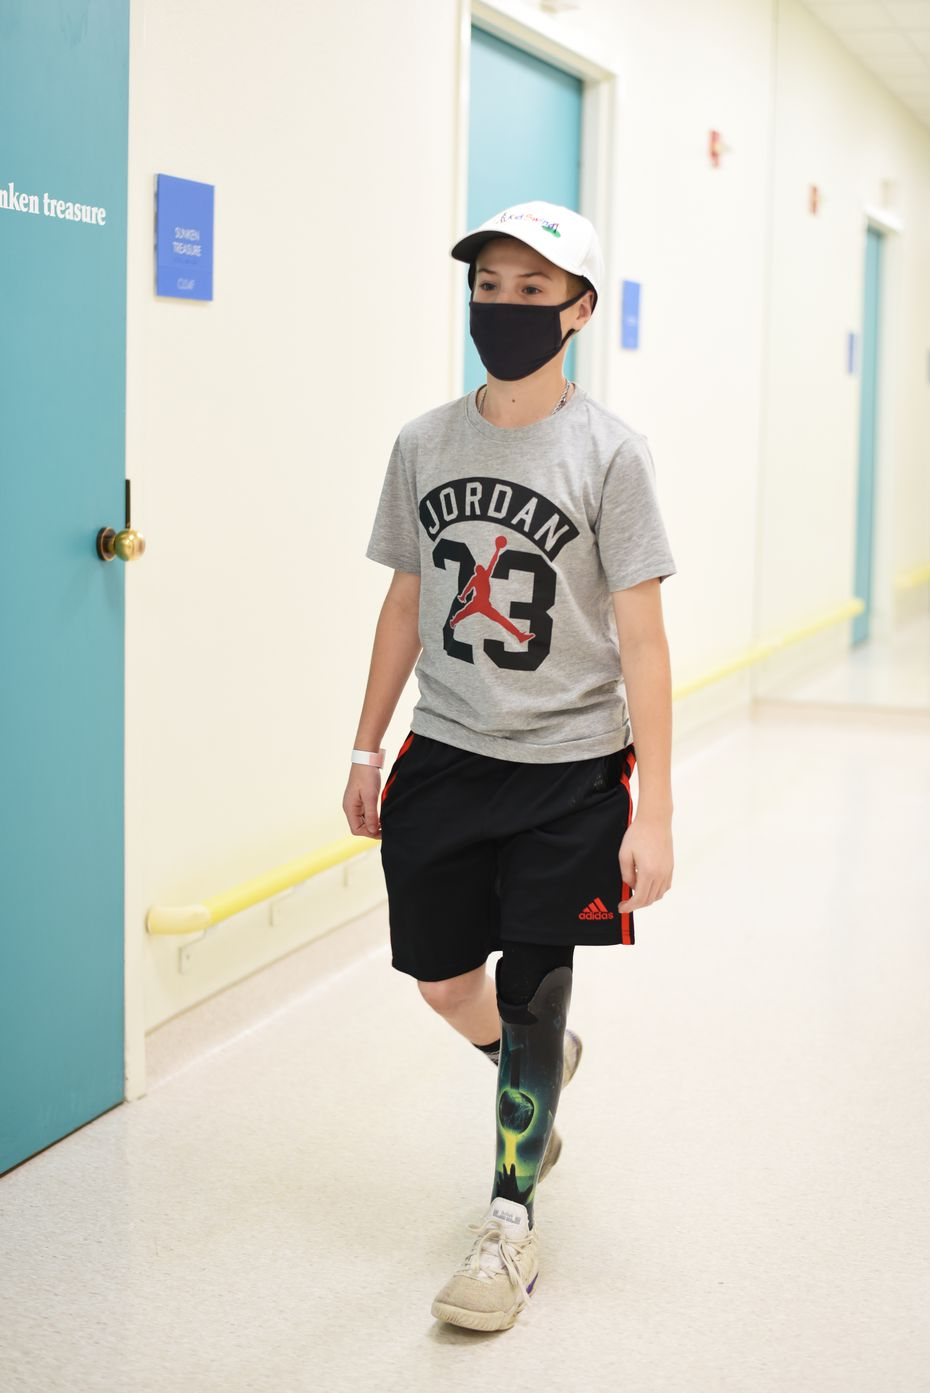 The prosthetics team at Scottish Rite for Children worked closely with Austin, listening to his input to create a prosthesis that fully represented him.